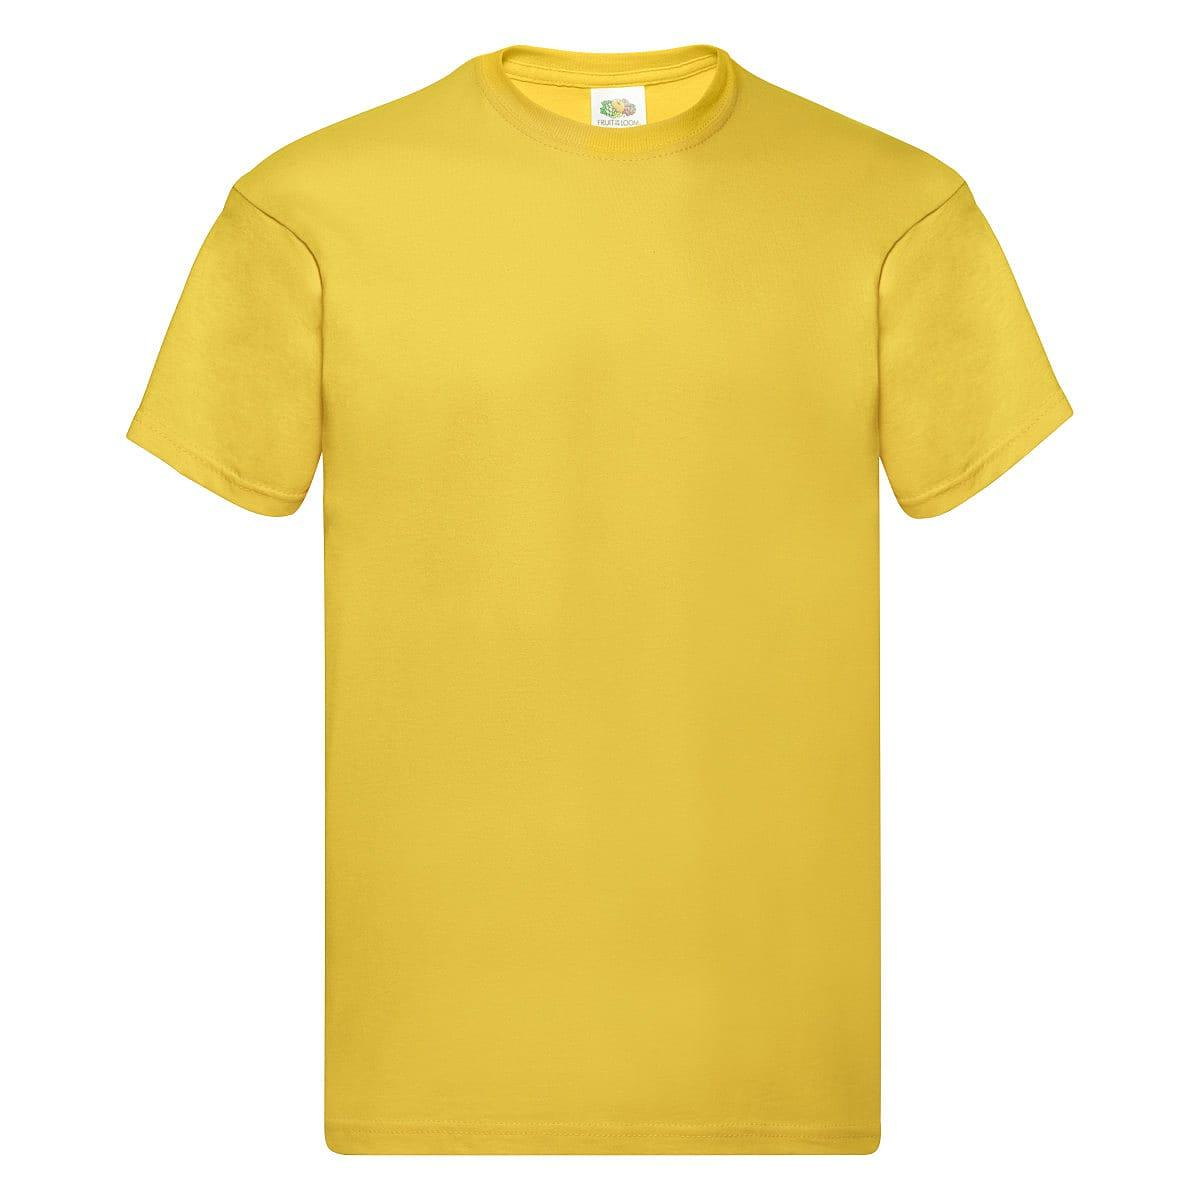 Fruit Of The Loom Original Full Cut T-Shirt in Sunflower (Product Code: 61082)